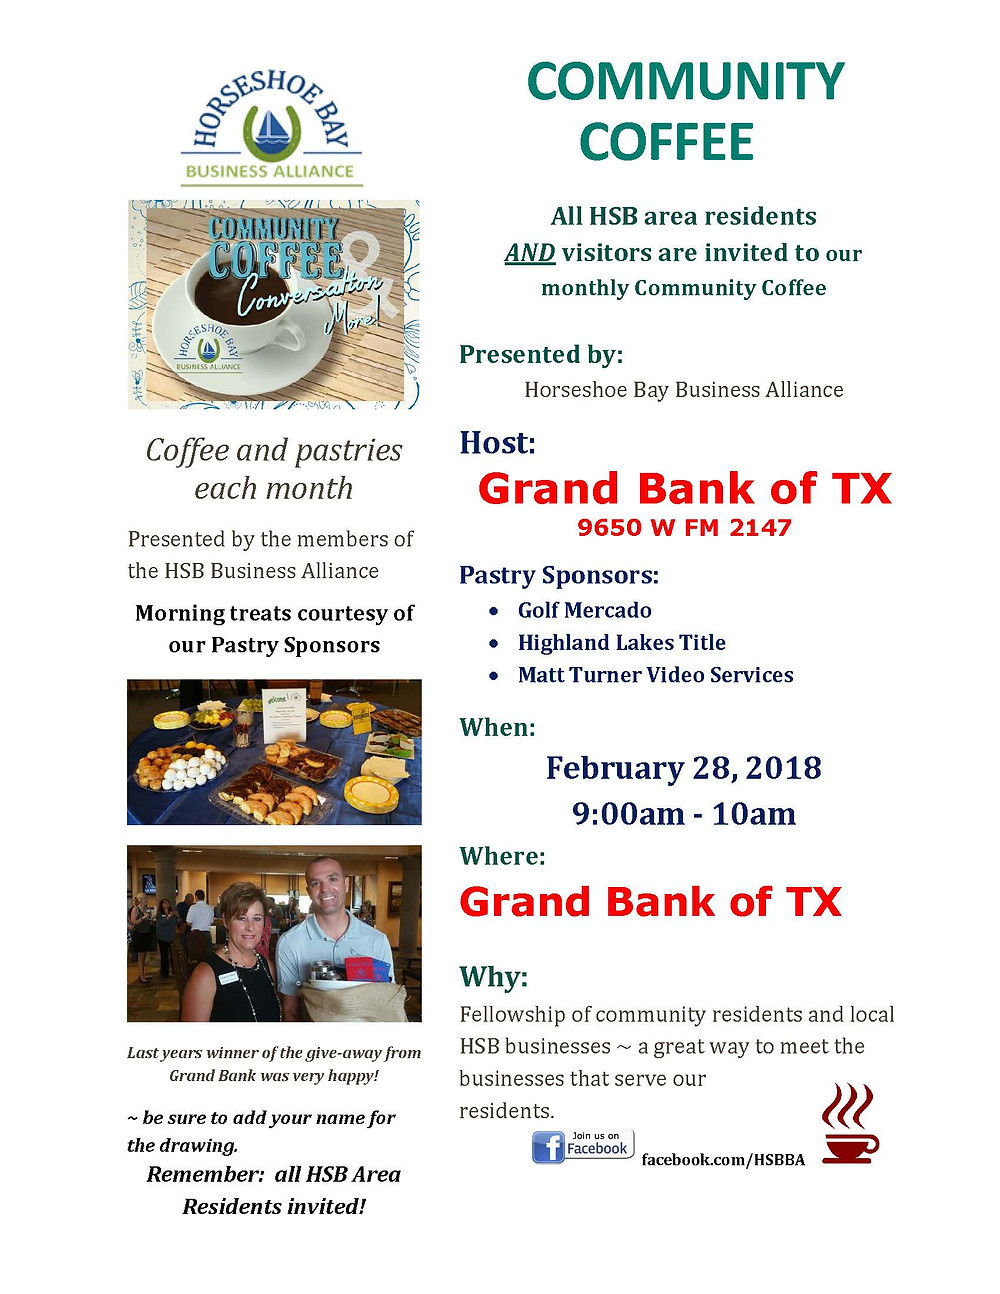 Horseshoe Bay Community Coffee Flyer